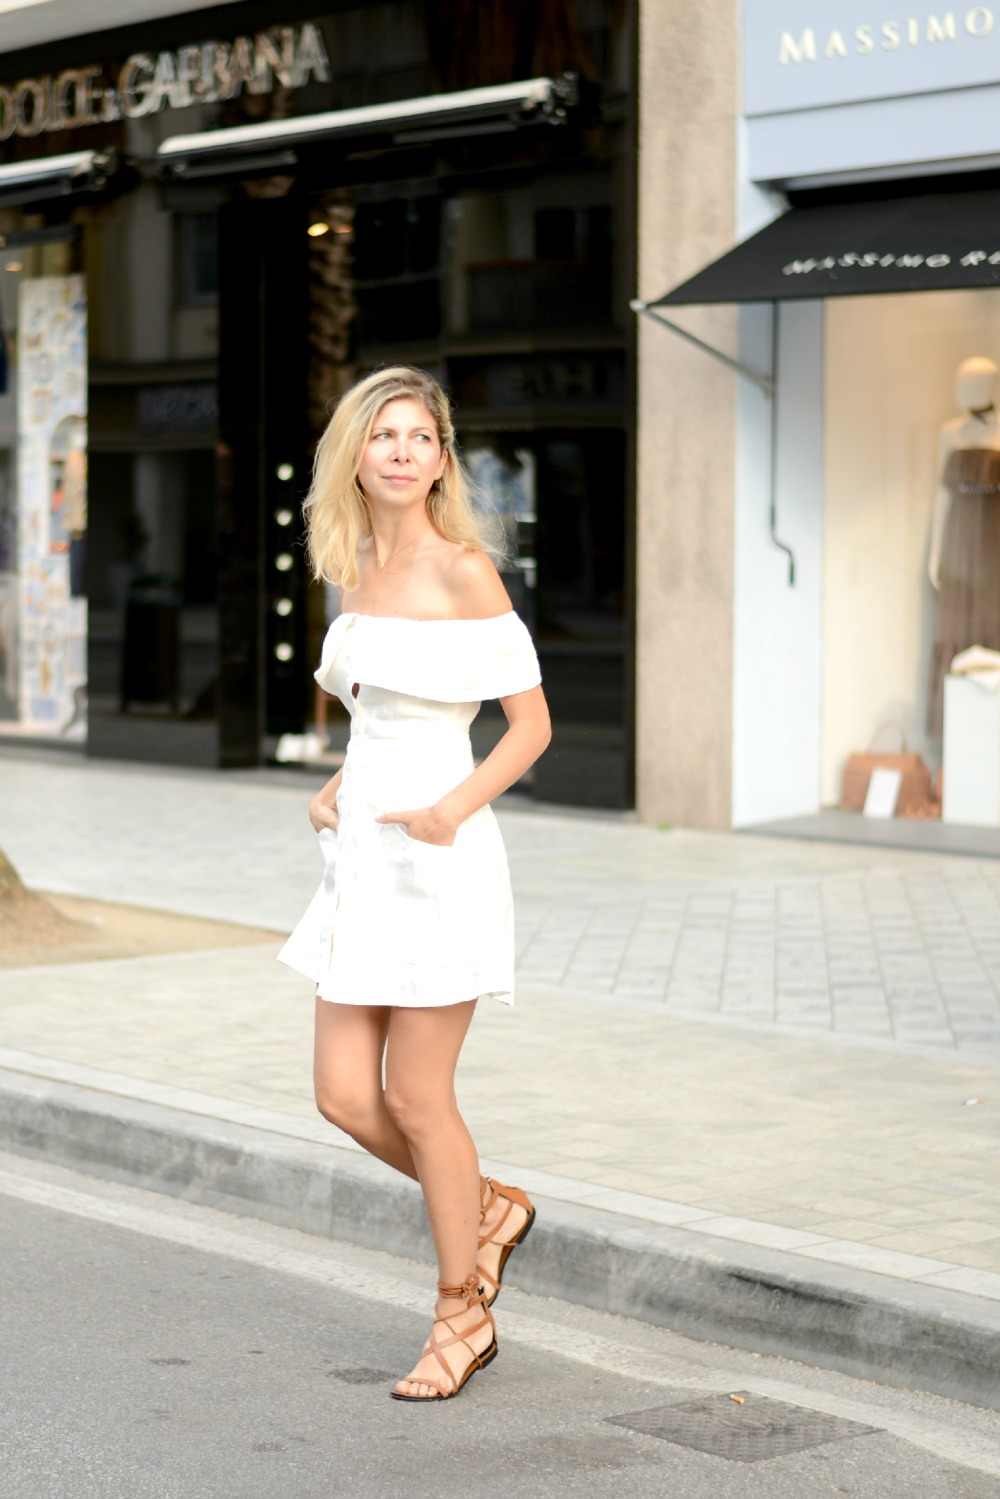 Arianna Trapani in the Botanica dress from Reformation